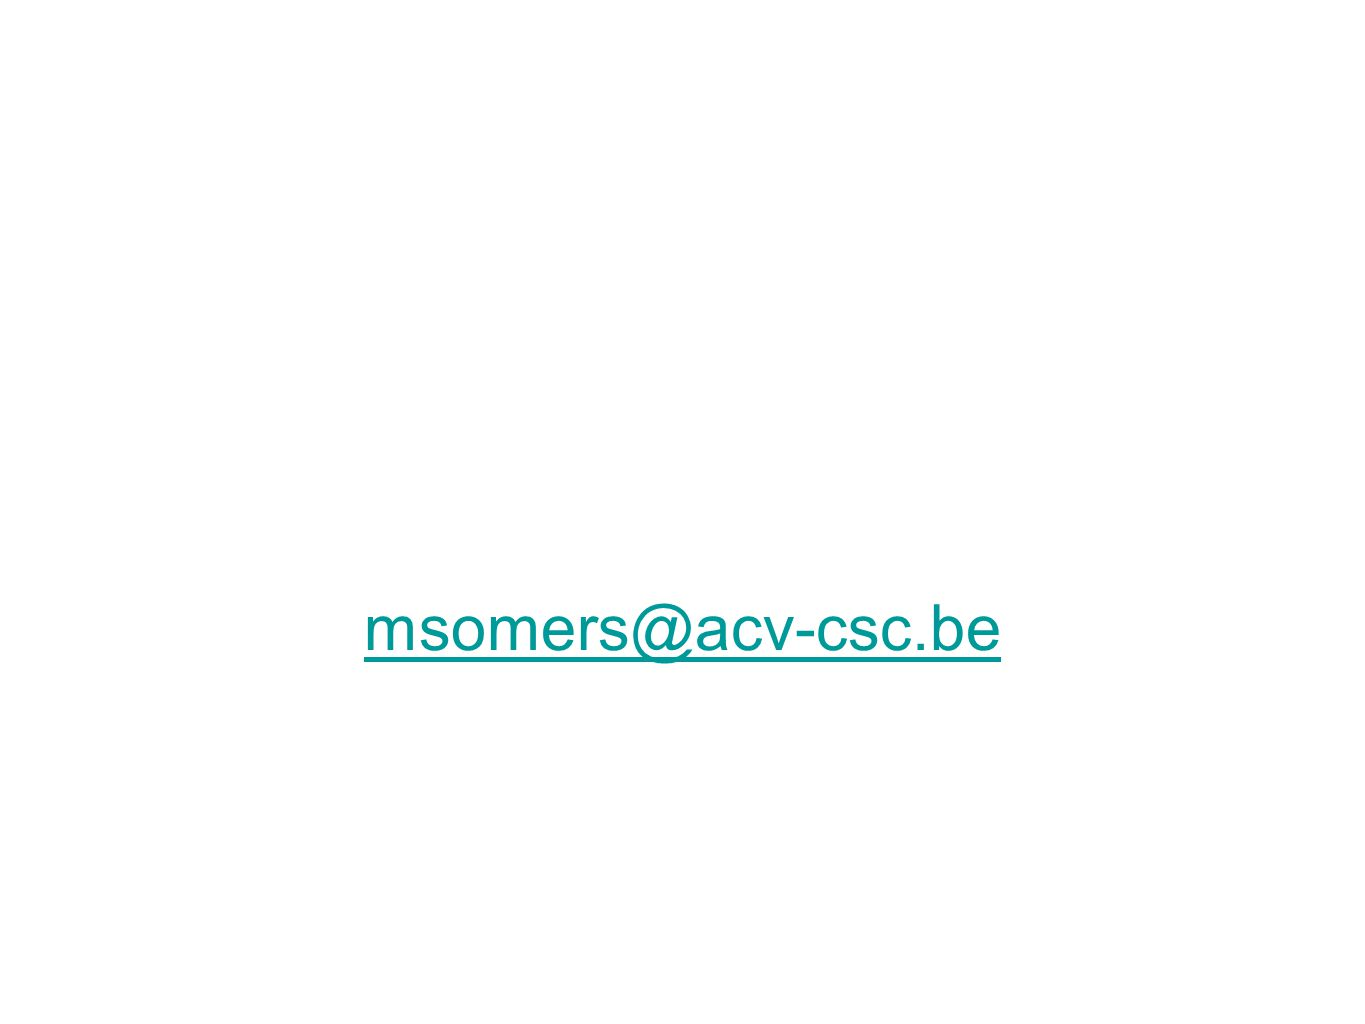 msomers@acv-csc.be